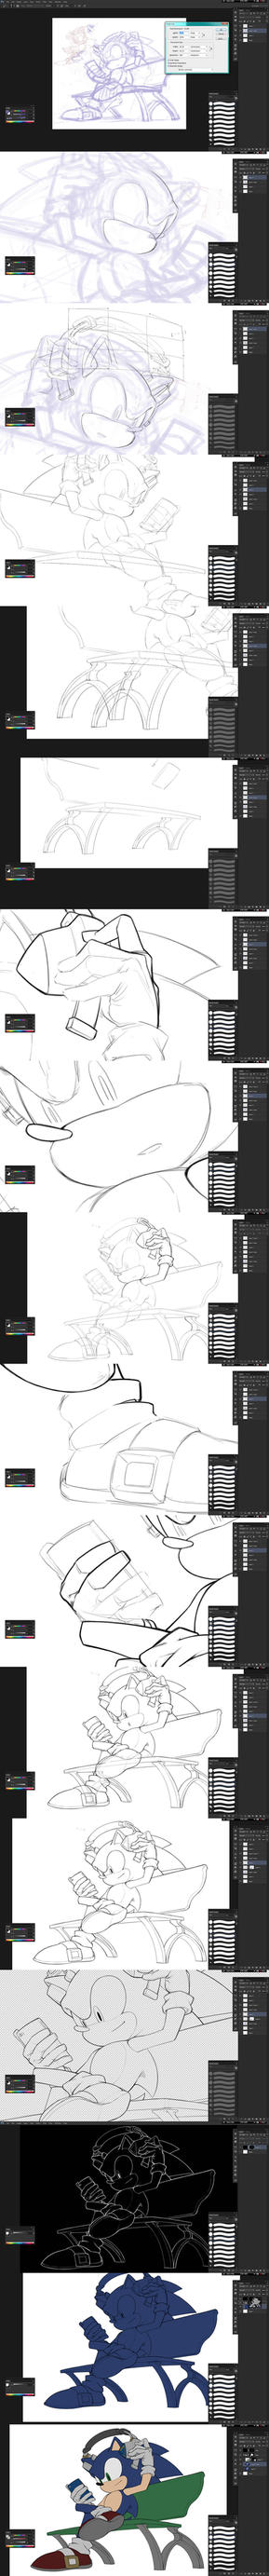 line art process by inualet